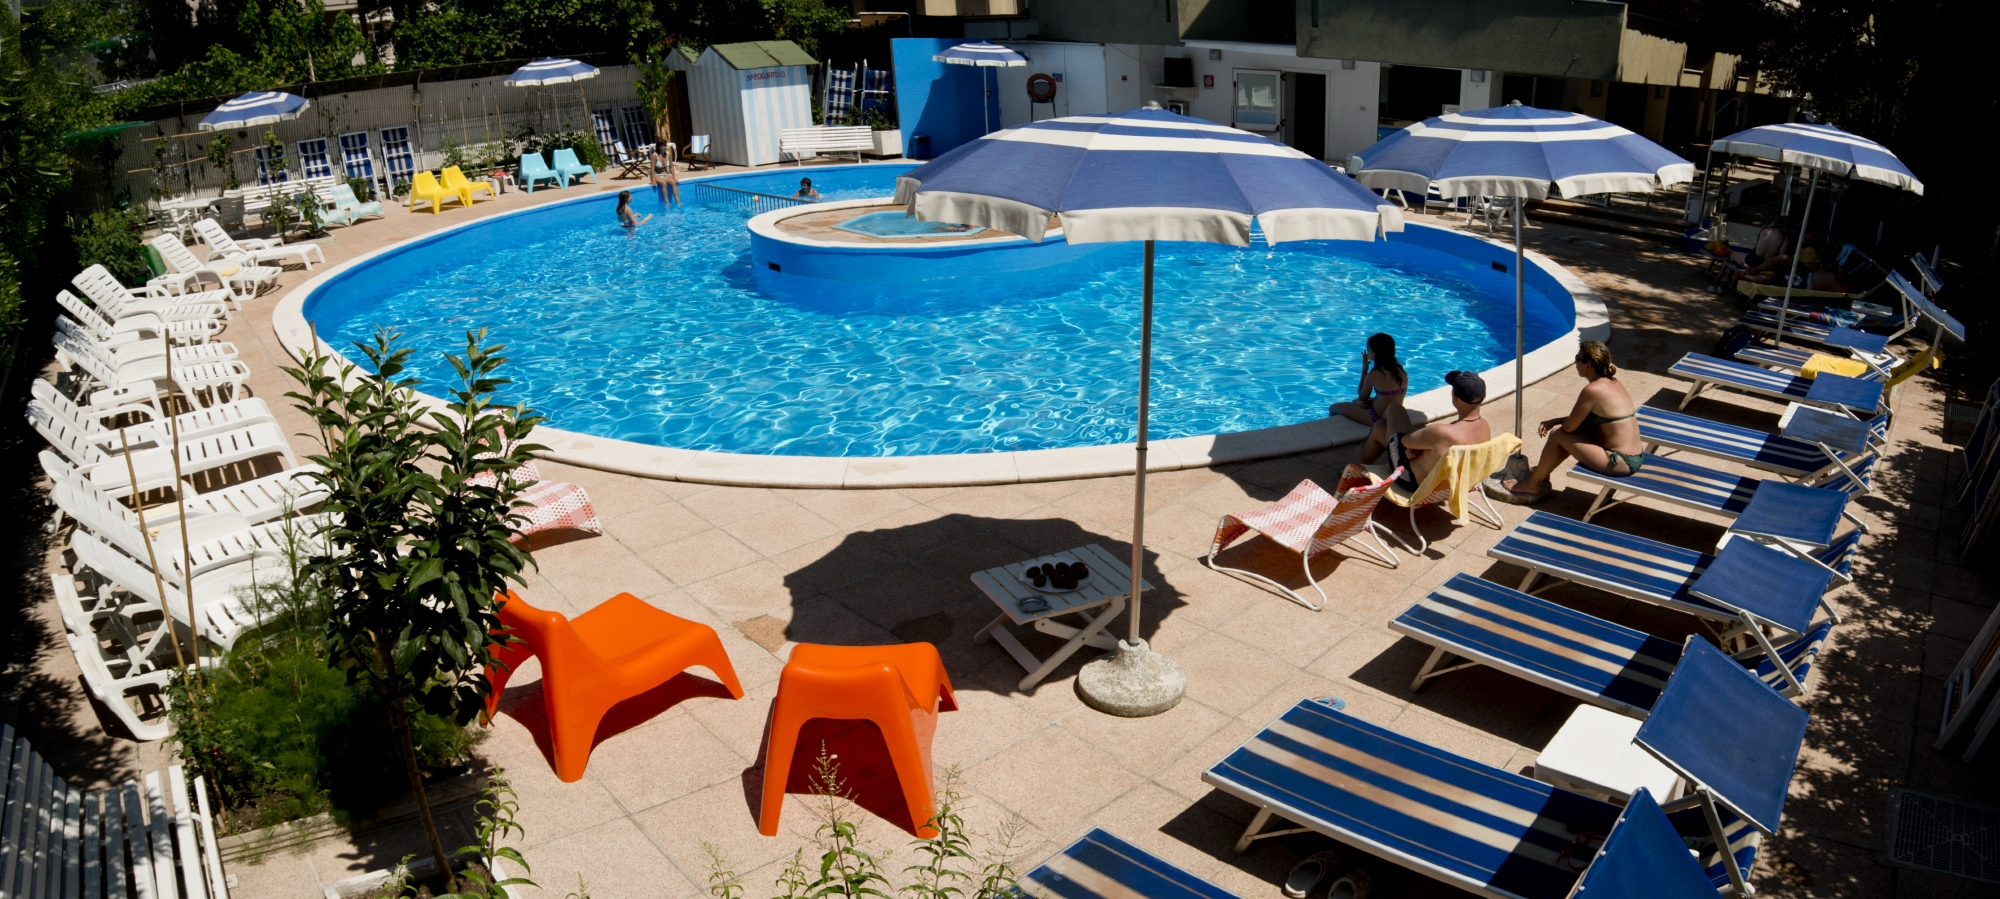 Offer For June 2018 All Inclusive Stay In Rimini In Hotel With Swimming Pool With Free Beach Village